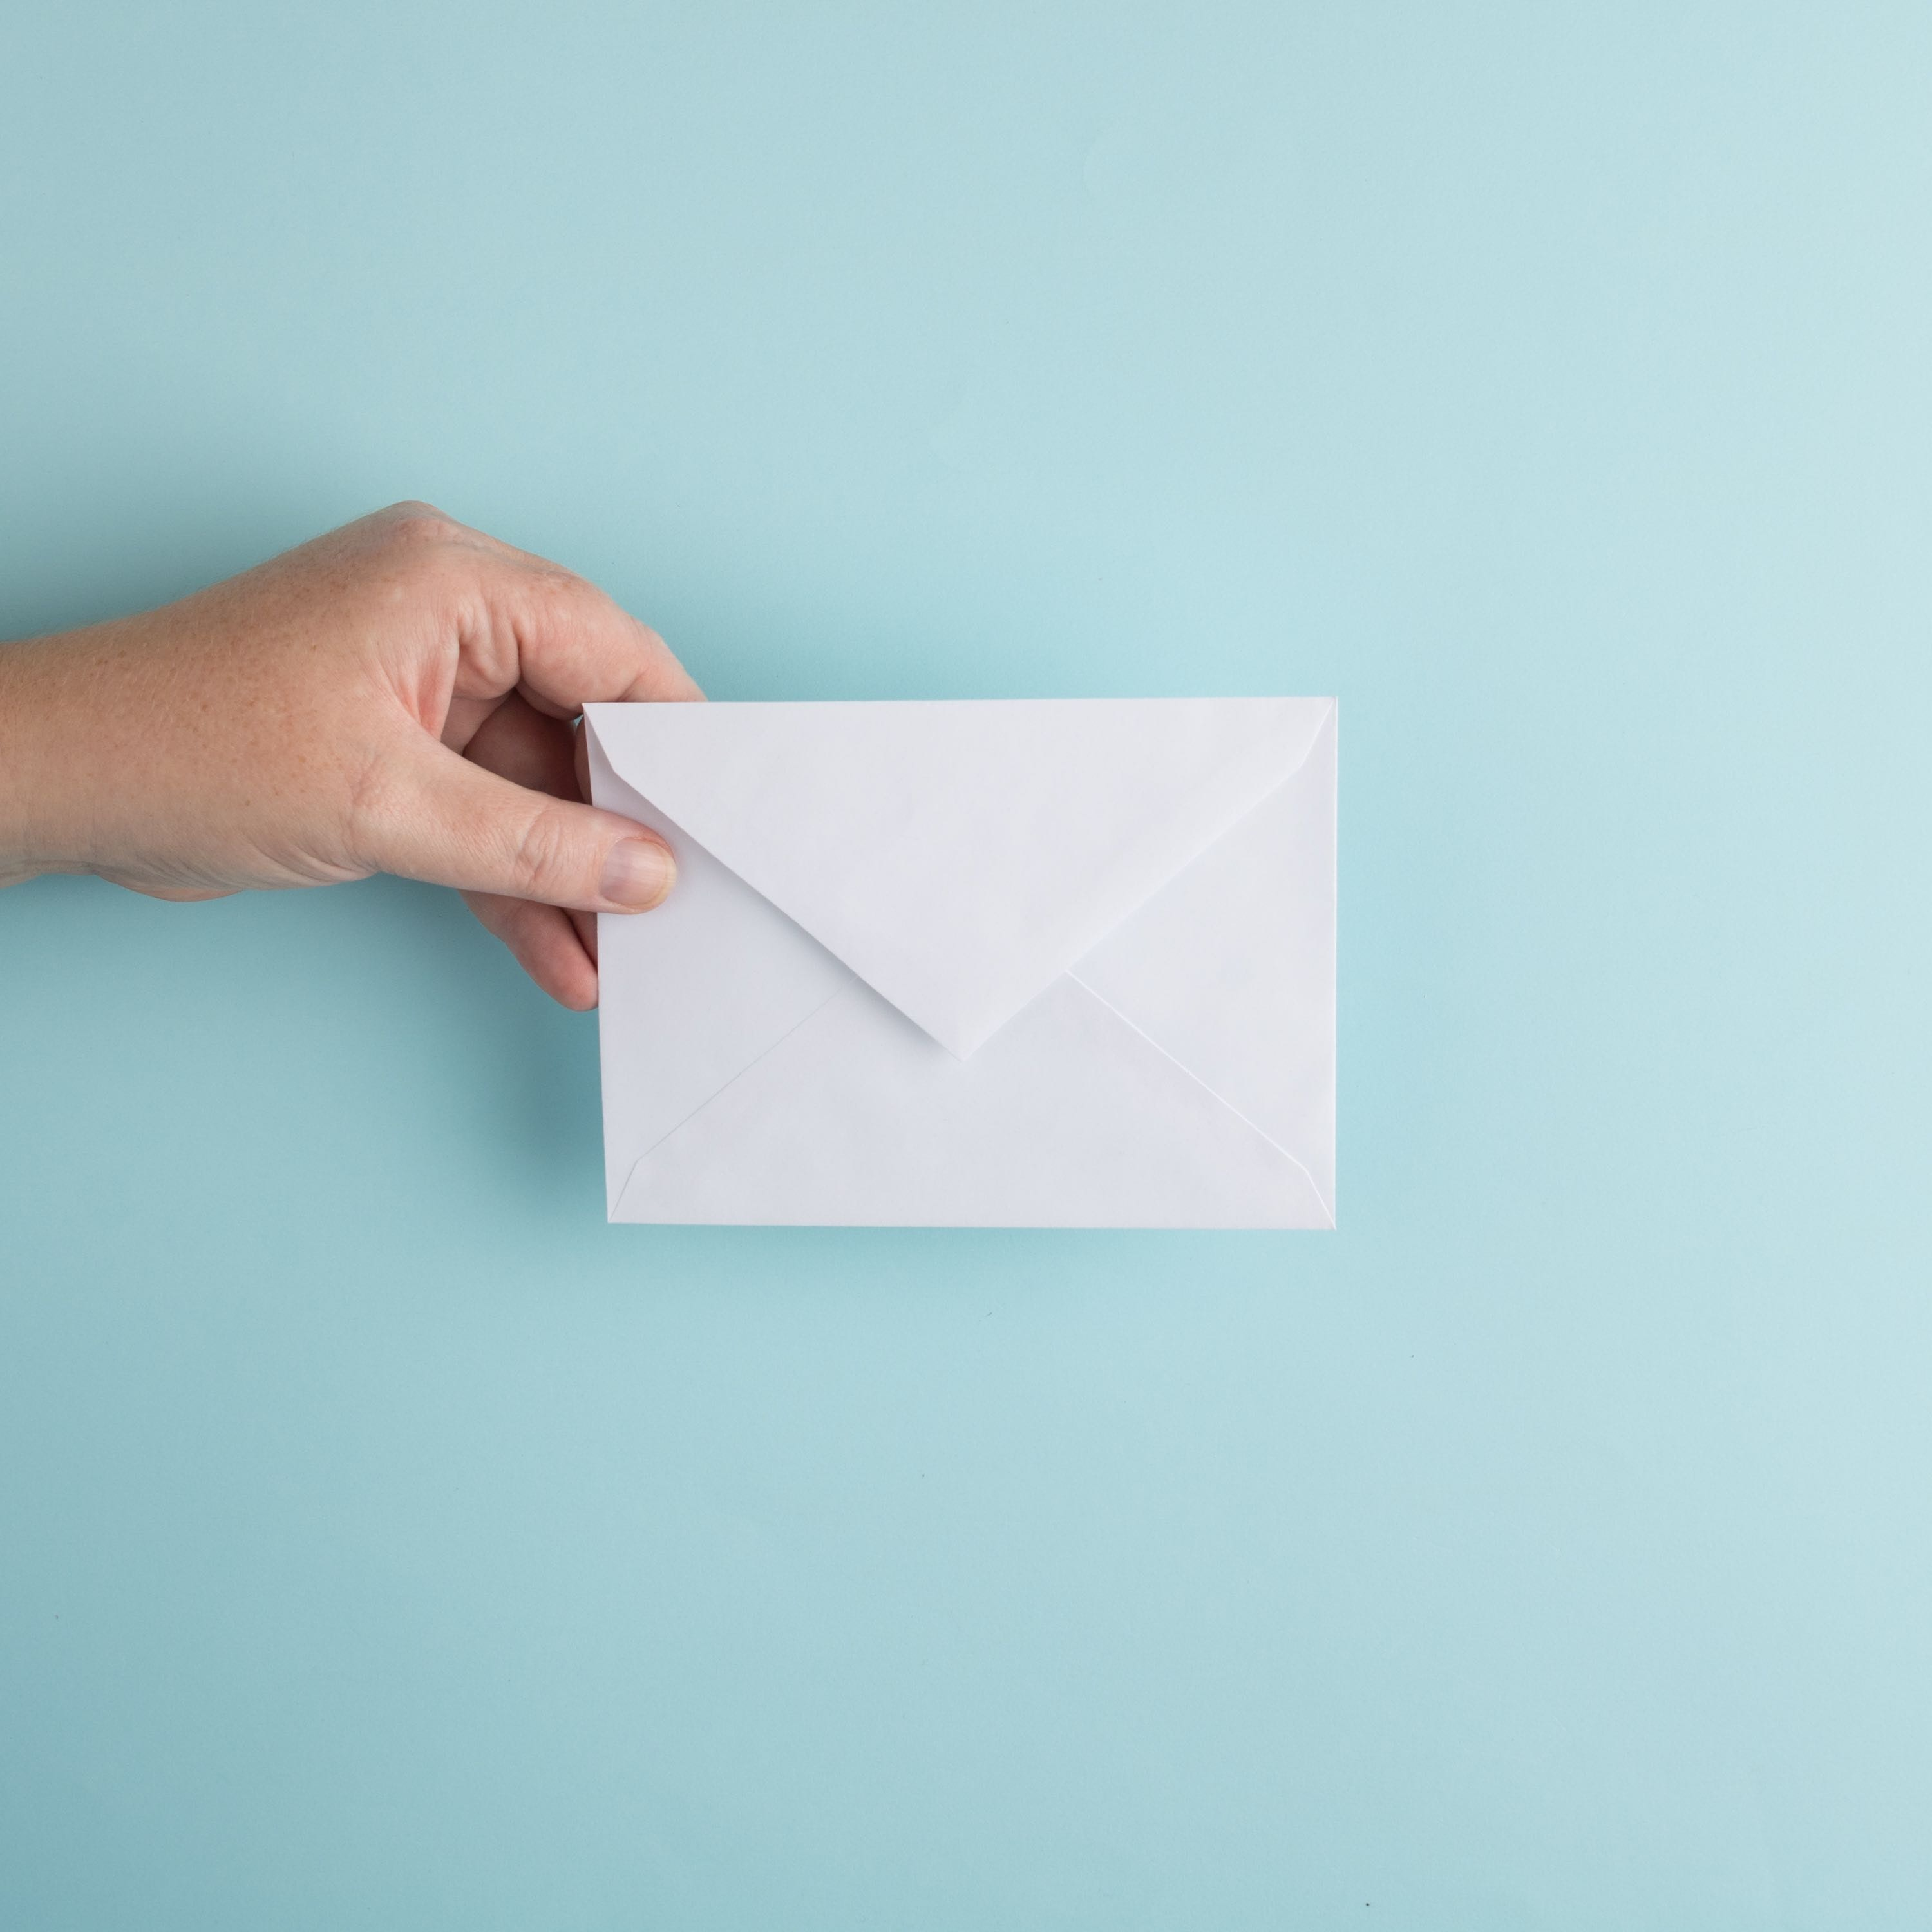 Effective Direct Mail for B2B